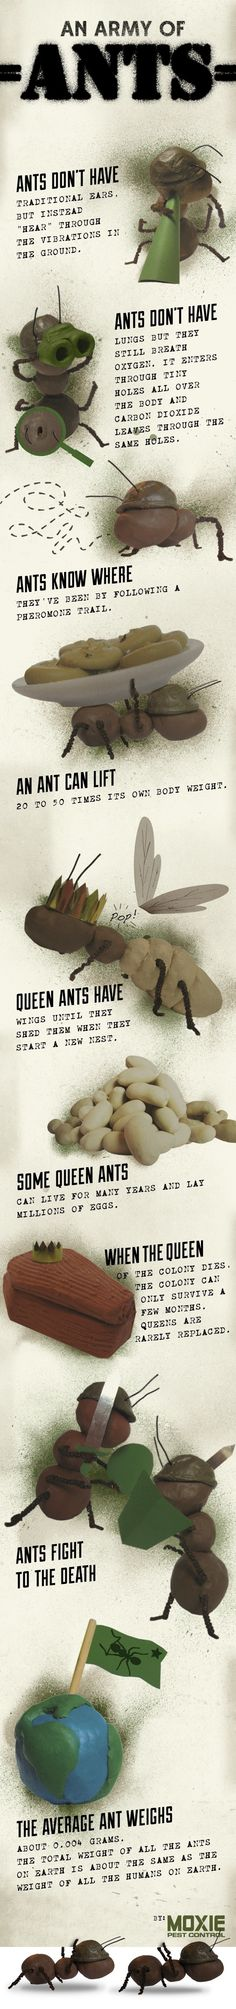 natural remedies to get rid of ants and spiders. #earthday